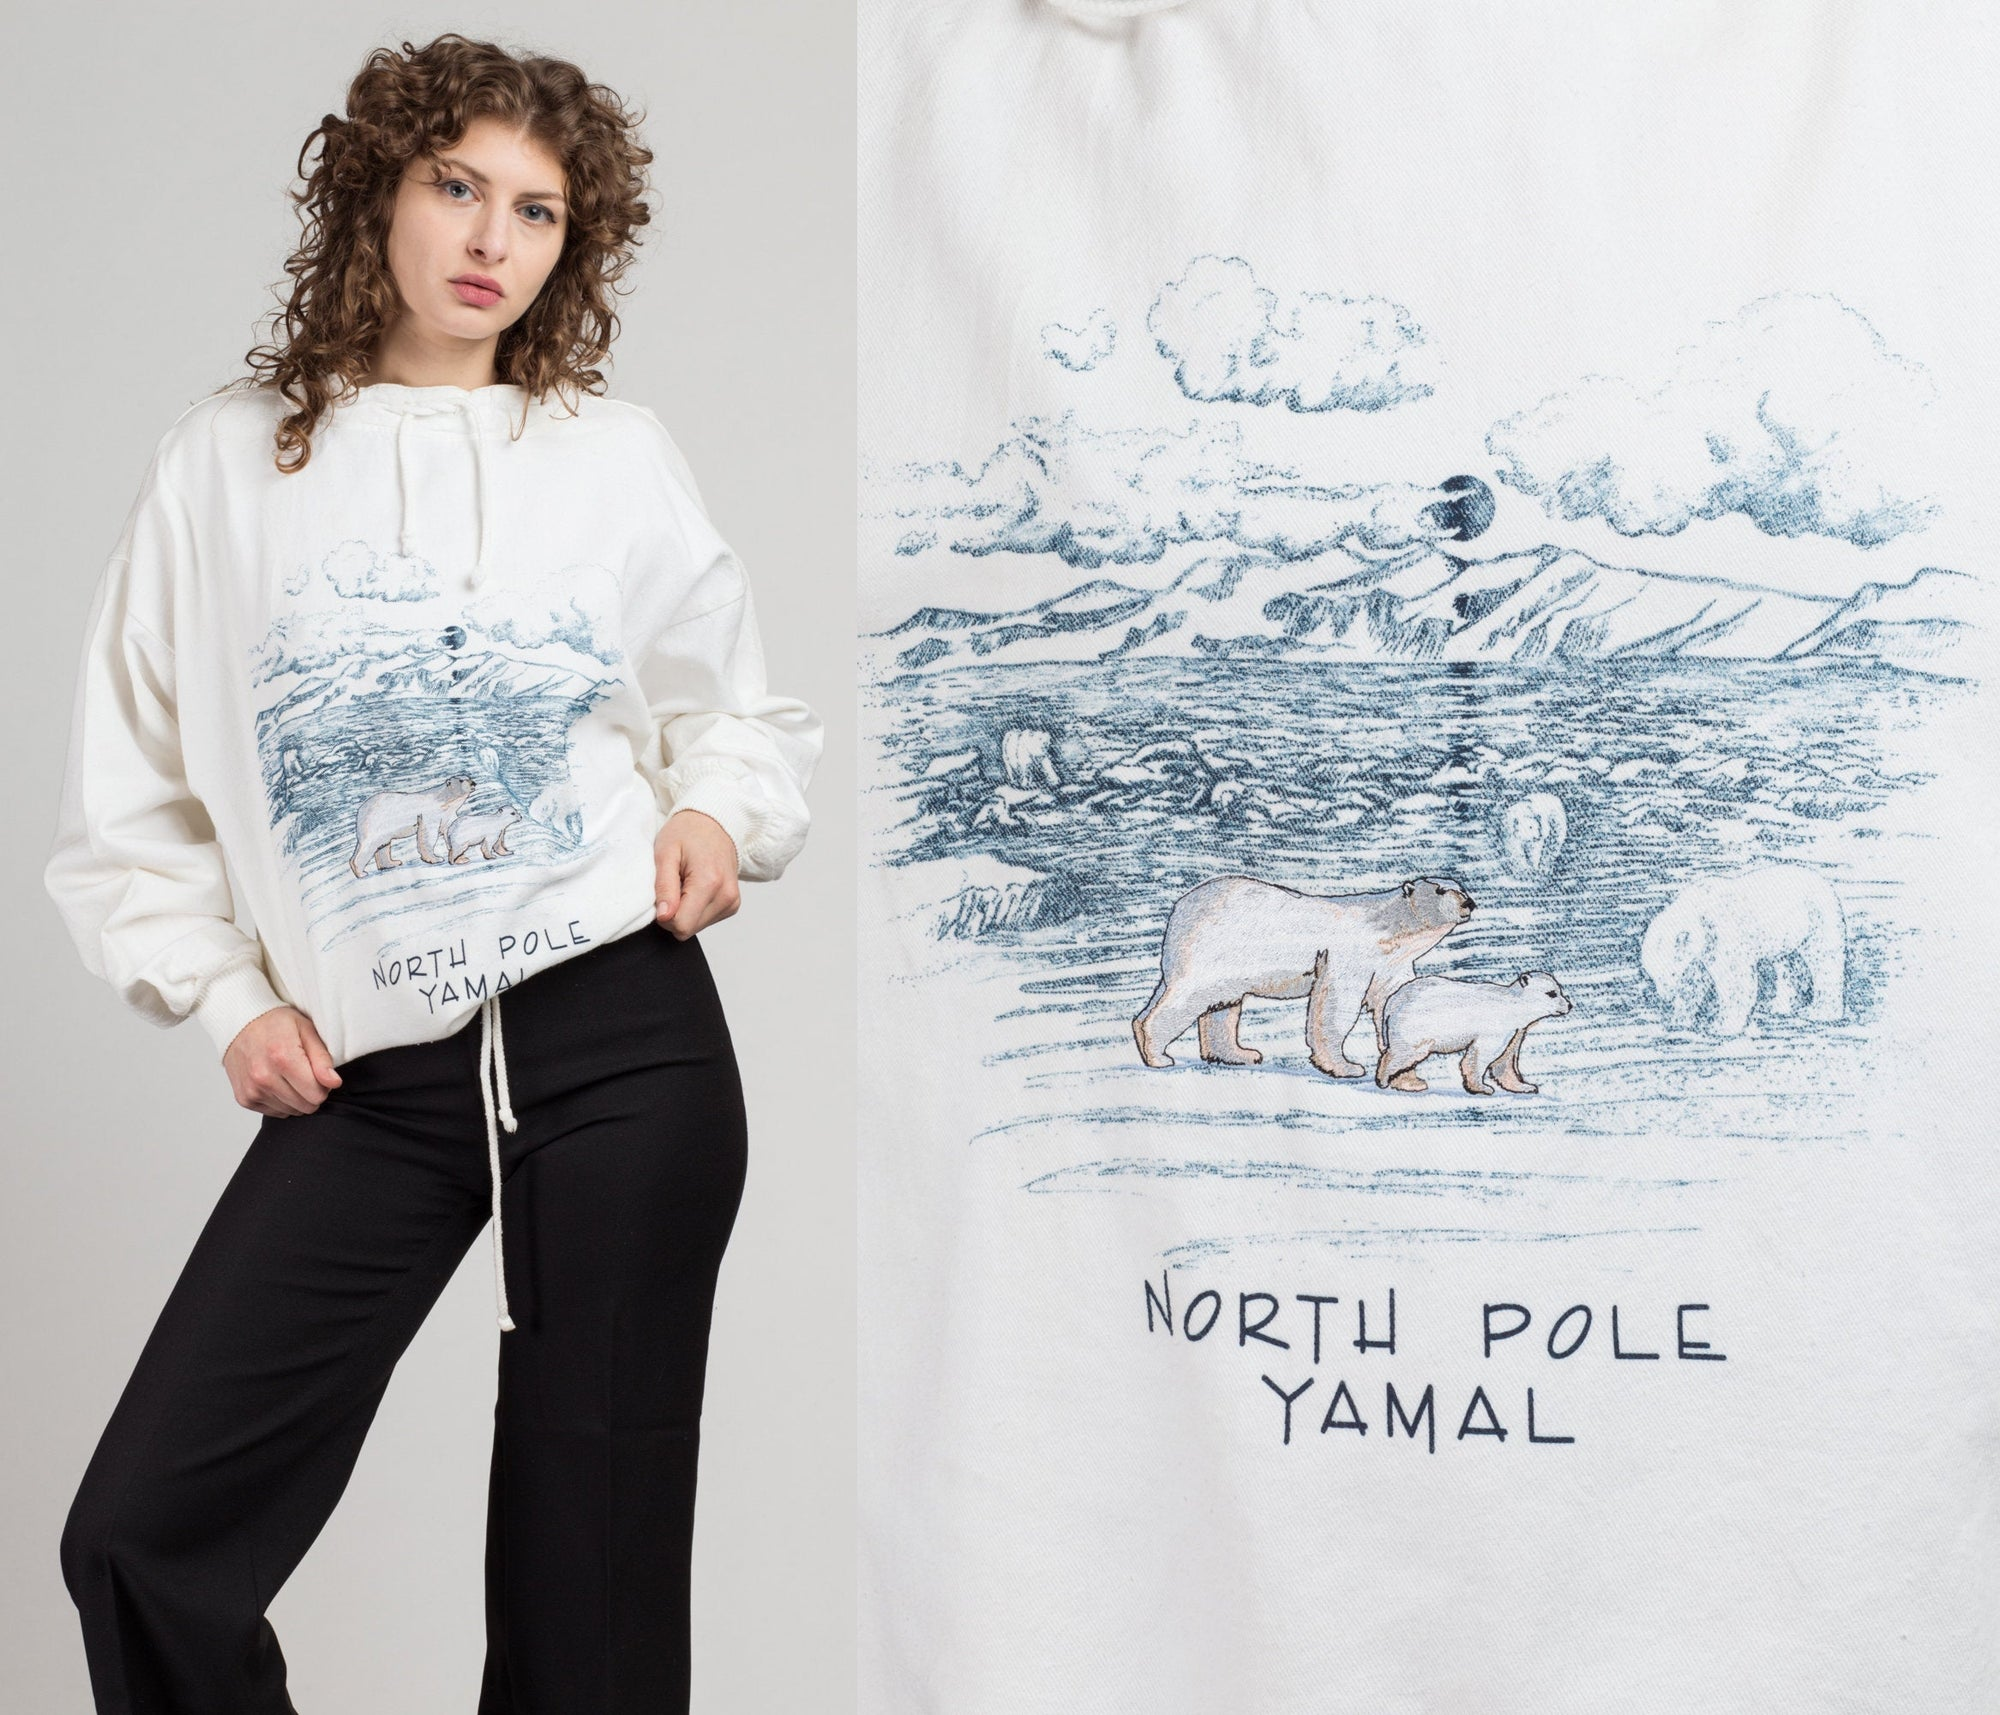 80s Yamal North Pole Sweatshirt - 2XL | Vintage White Polar Bear Tourist Pullover